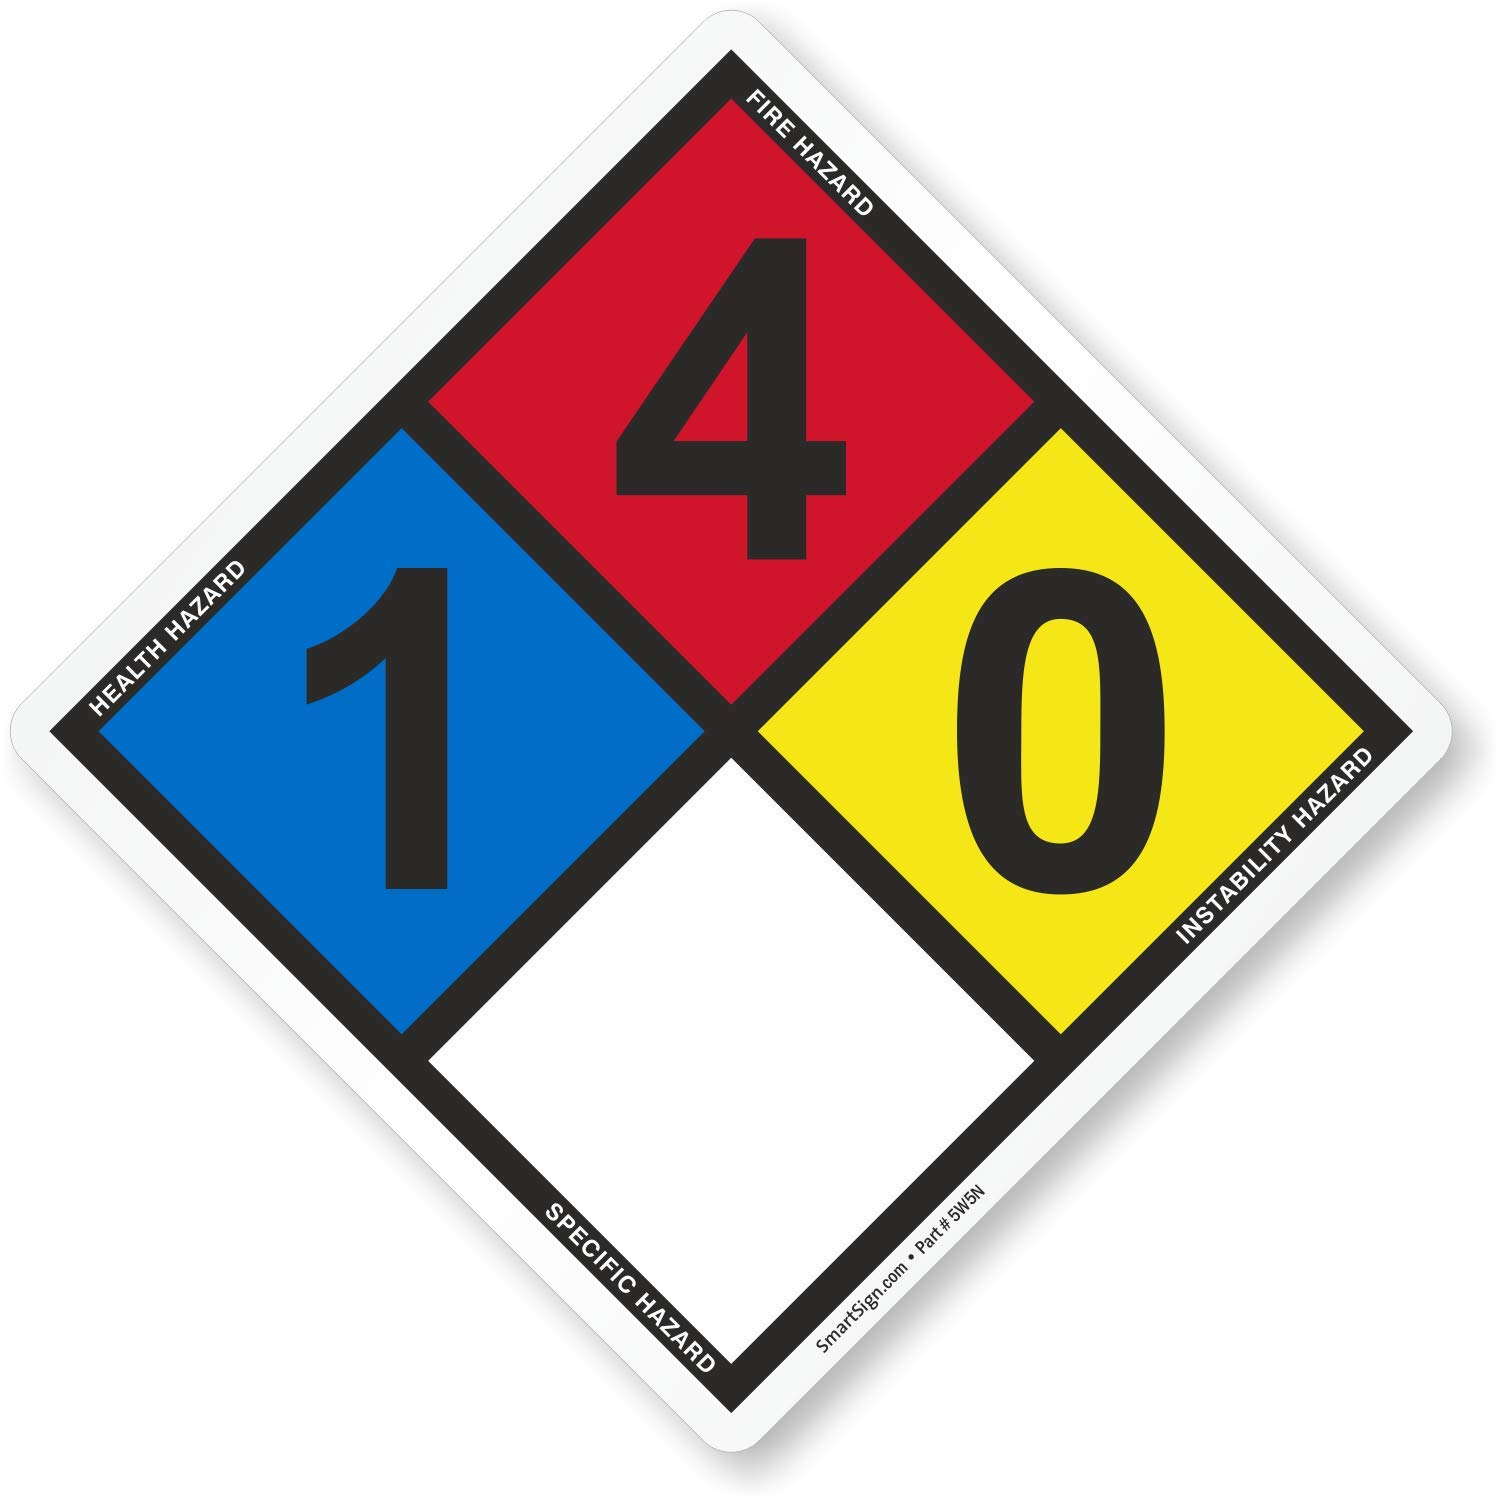 SmartSign Vinyl Adhesive NFPA Sign, 'Rating Legend for Isobutylene Storage Area', 14.2' tall diamond (point to point), Black/Blue/Red/Yellow on White (pack of 5) Rating Legend for Isobutylene Storage Area 14.2 tall diamond (point to point) Lyle Signs